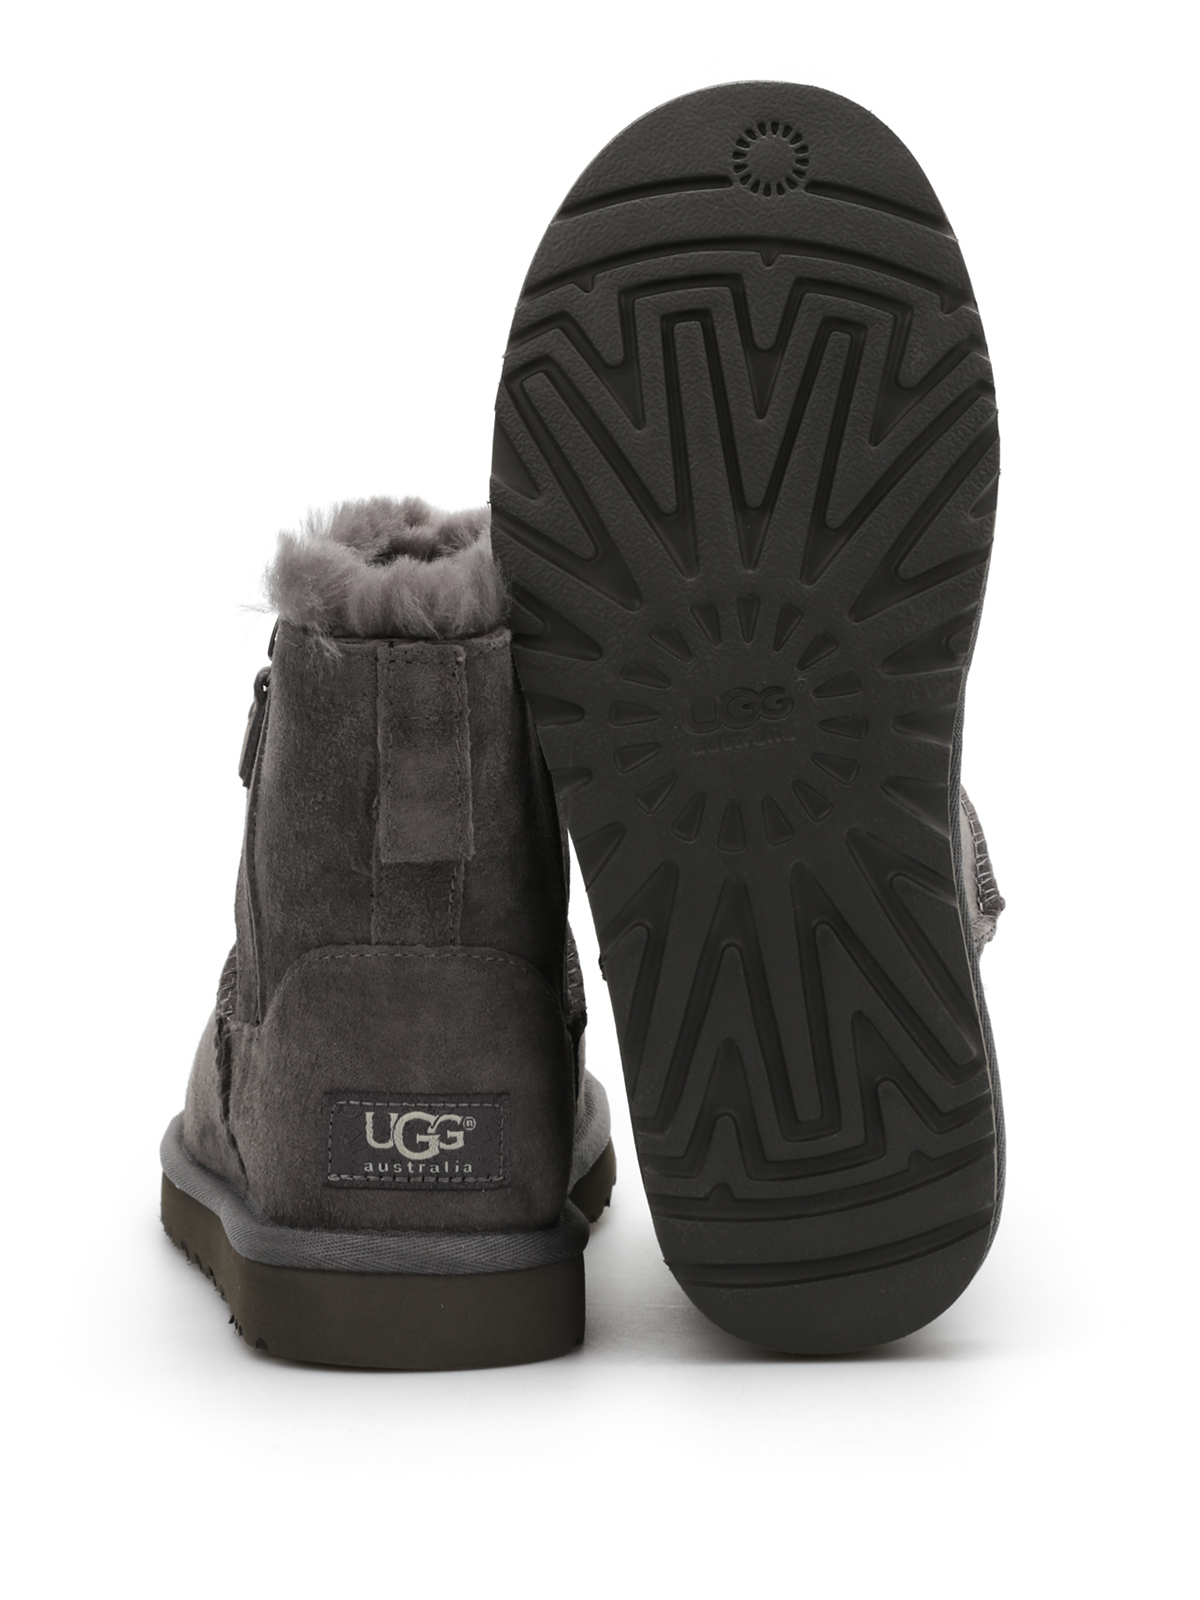 16950017d70 Ugg Classic Mini Ankle Boots Chocolate - cheap watches mgc-gas.com